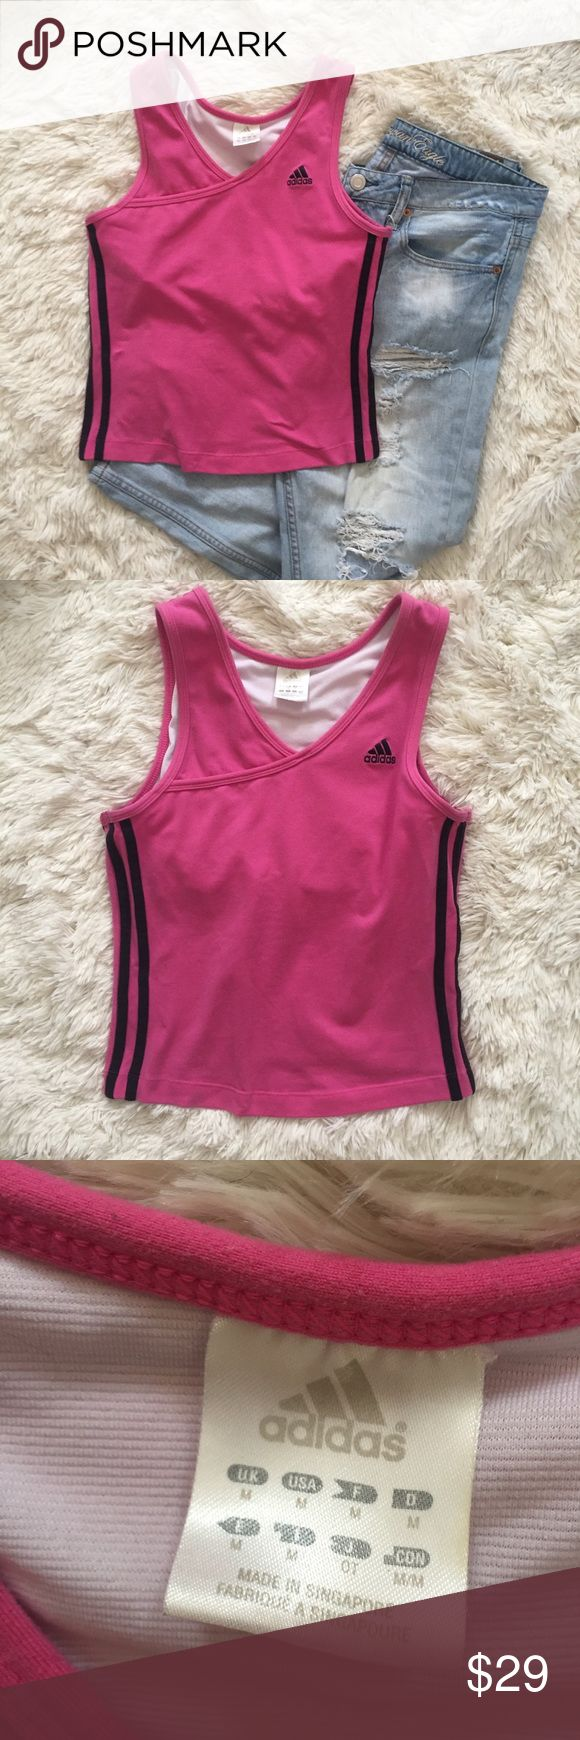 "Adidas hot pink & black crop top size Medium Adidas hot pink crop top with built in sports bra size medium. Gently used condition. Embroidered adaidas logo, stripes down each side. A favorite of many trending celebrities such as Kylie Jenner! Measurements: 15"" pit to pit (stretches), 22"" length. Reasonable offers always accepted. adidas Tops Crop Tops"